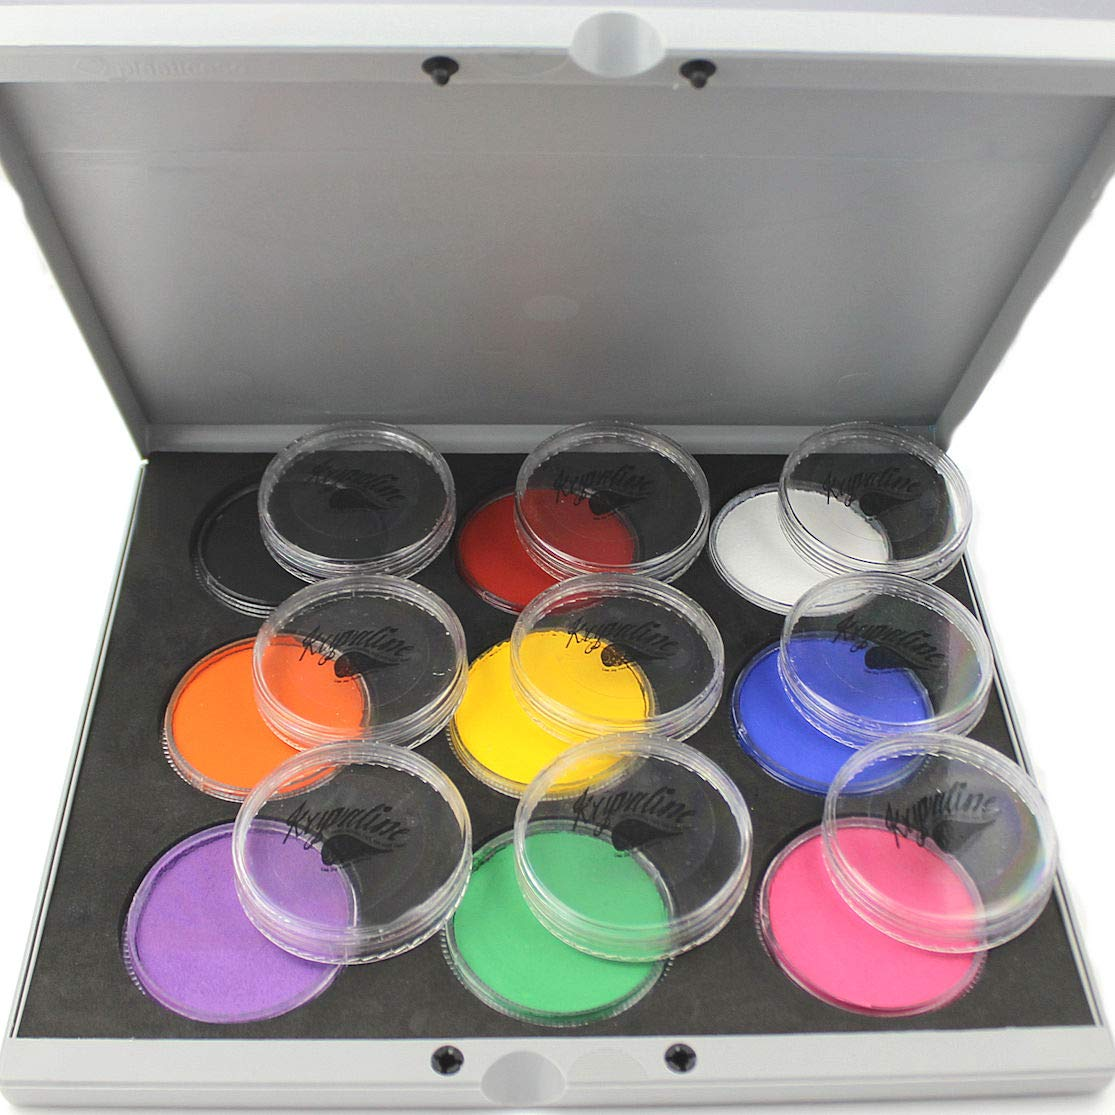 Face Painting Palette with Kryvaline Regular Line Essential Colors 30g Each Made with FDA Approved Materials Enough for Creating 500 Designs